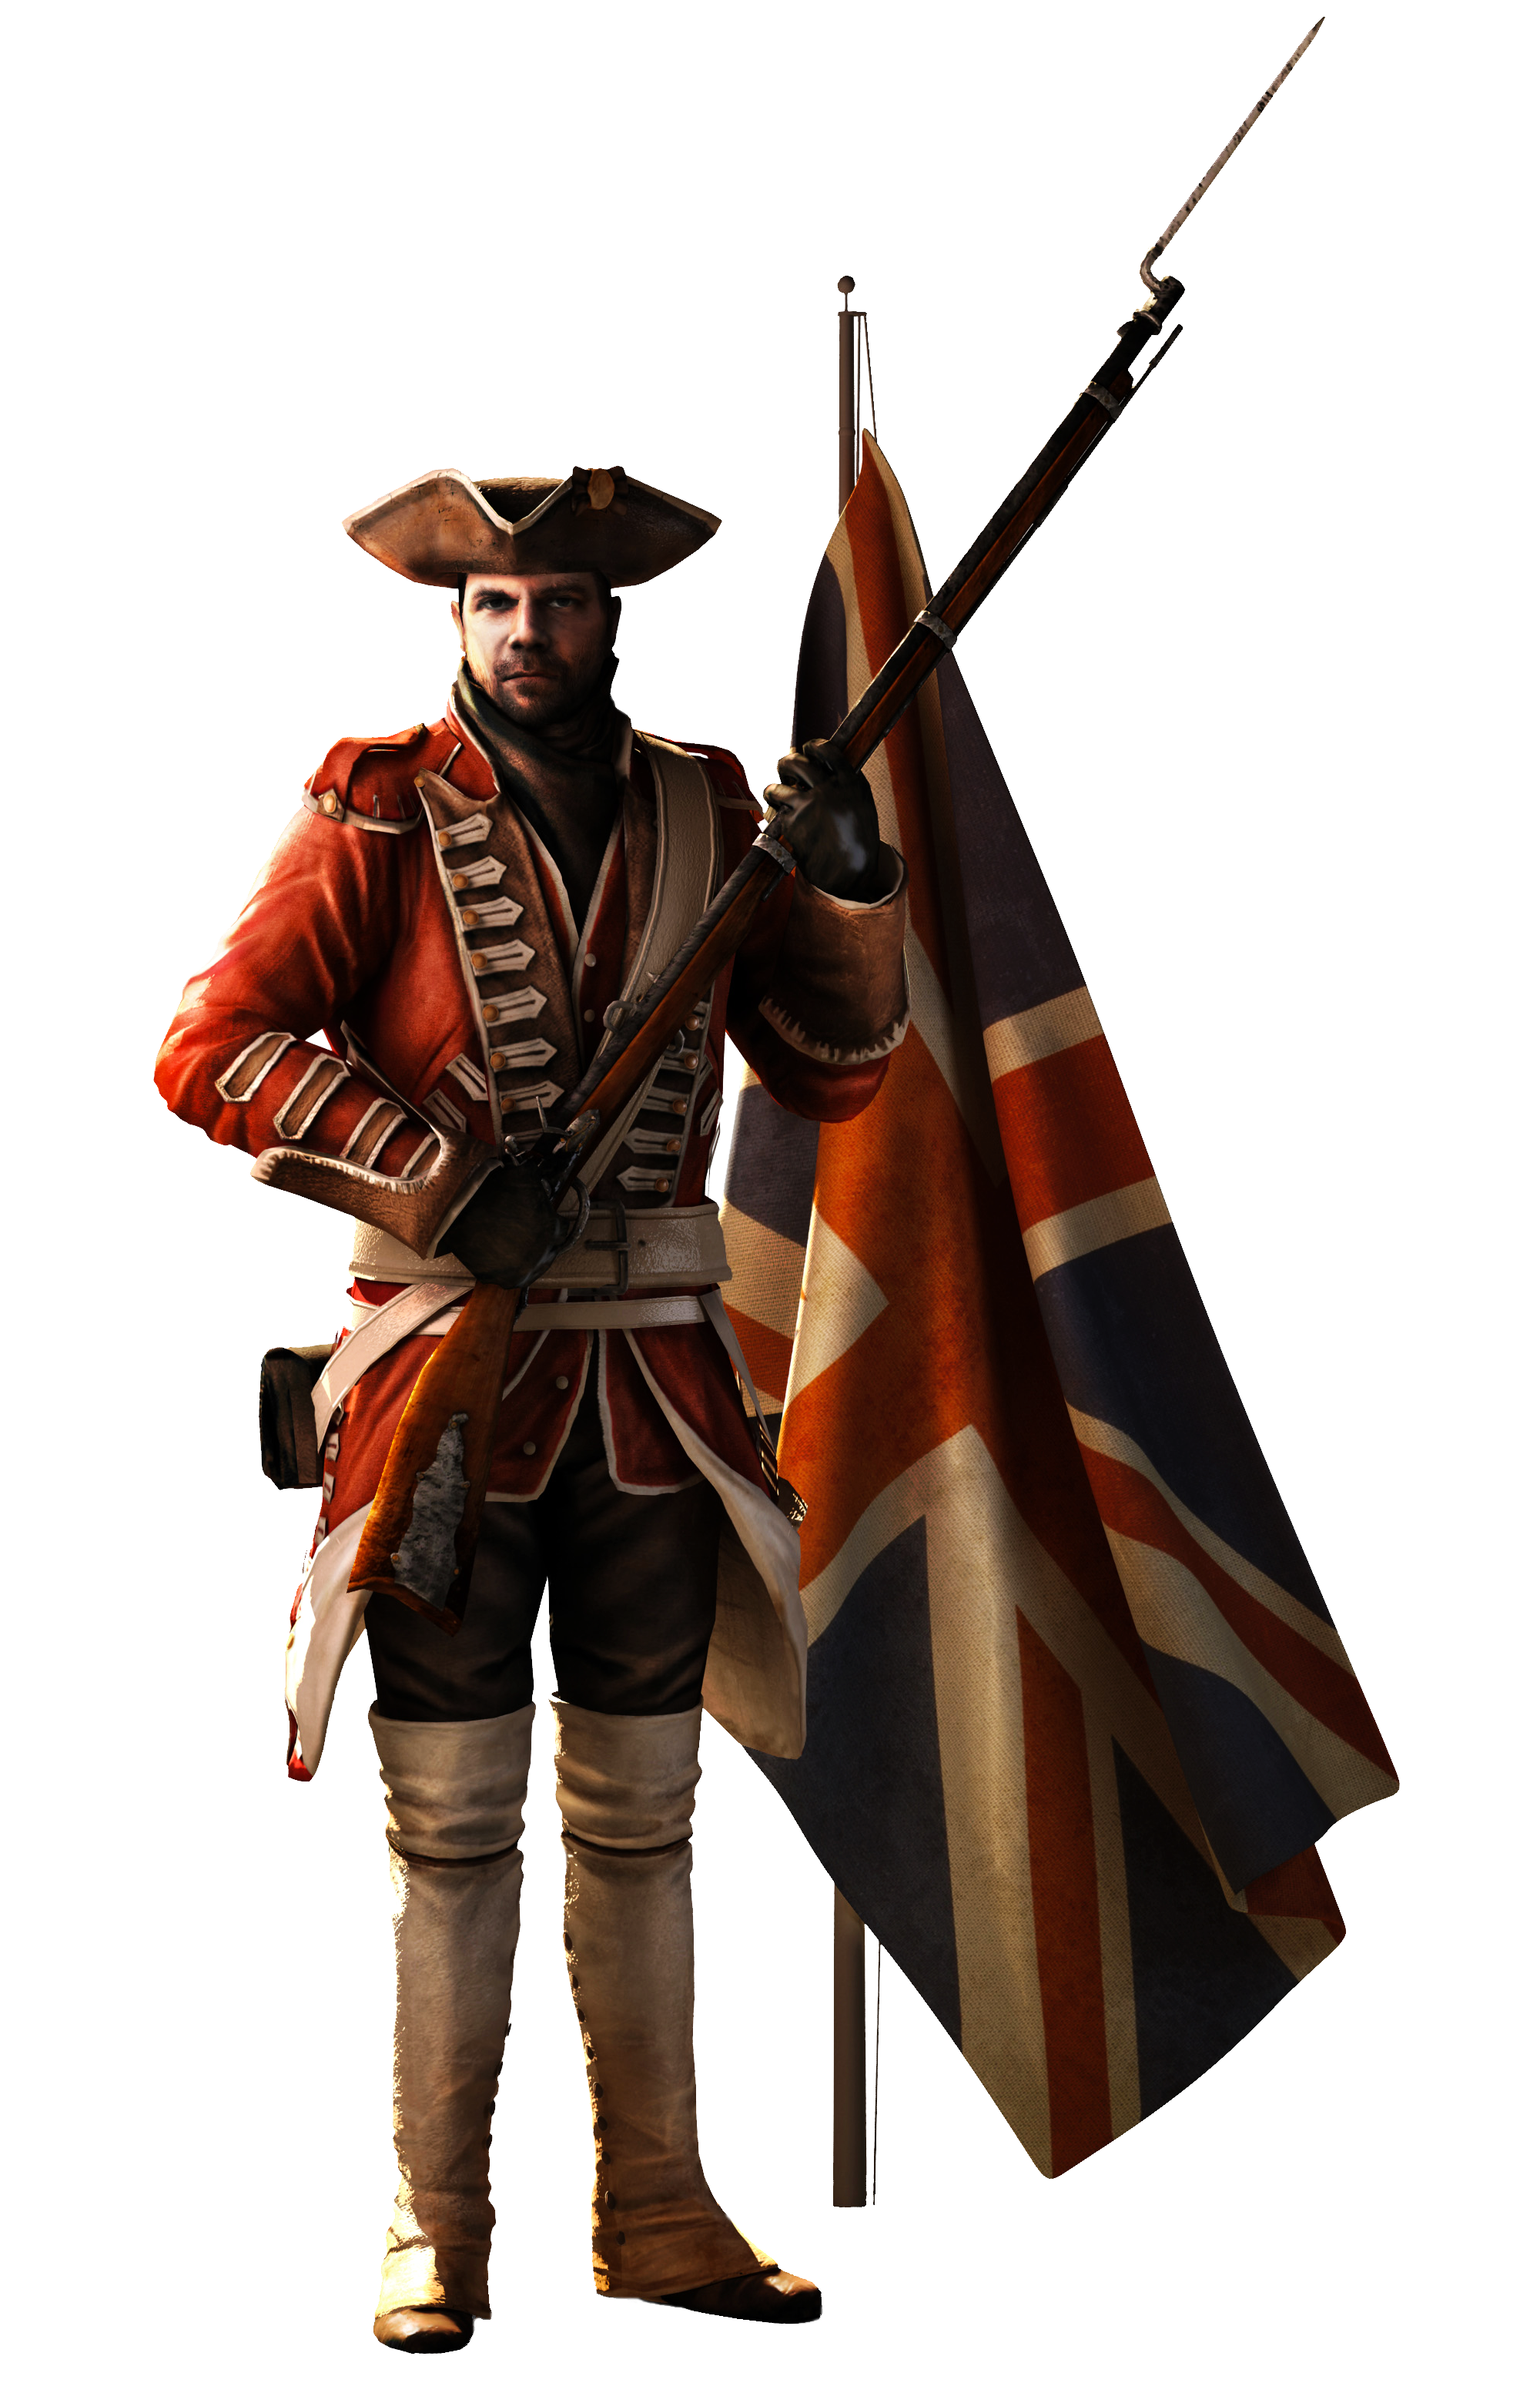 British Army PNG - 160931